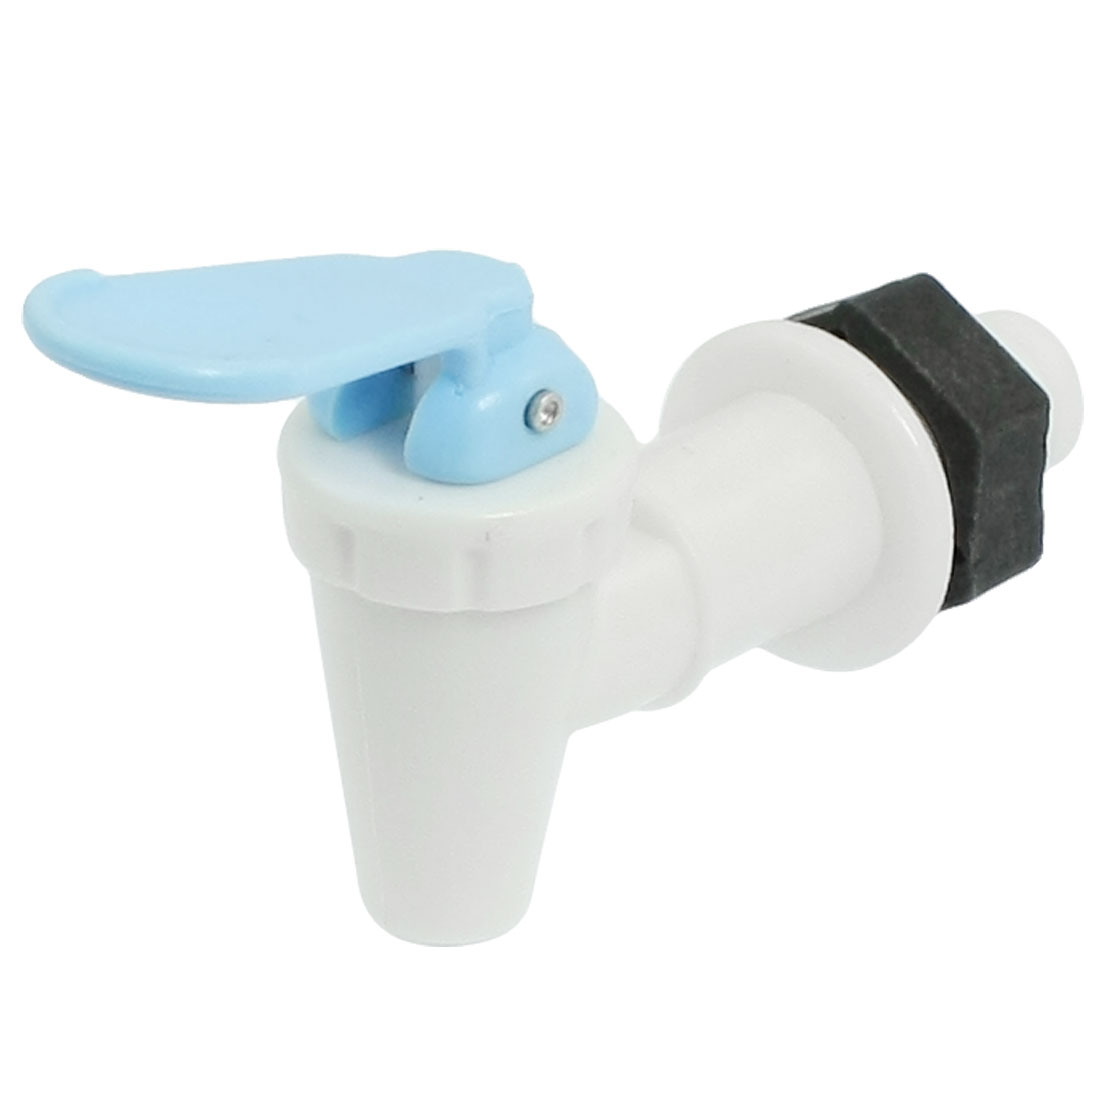 Replacement White Blue Black Plastic Water Dispenser Faucet Tap